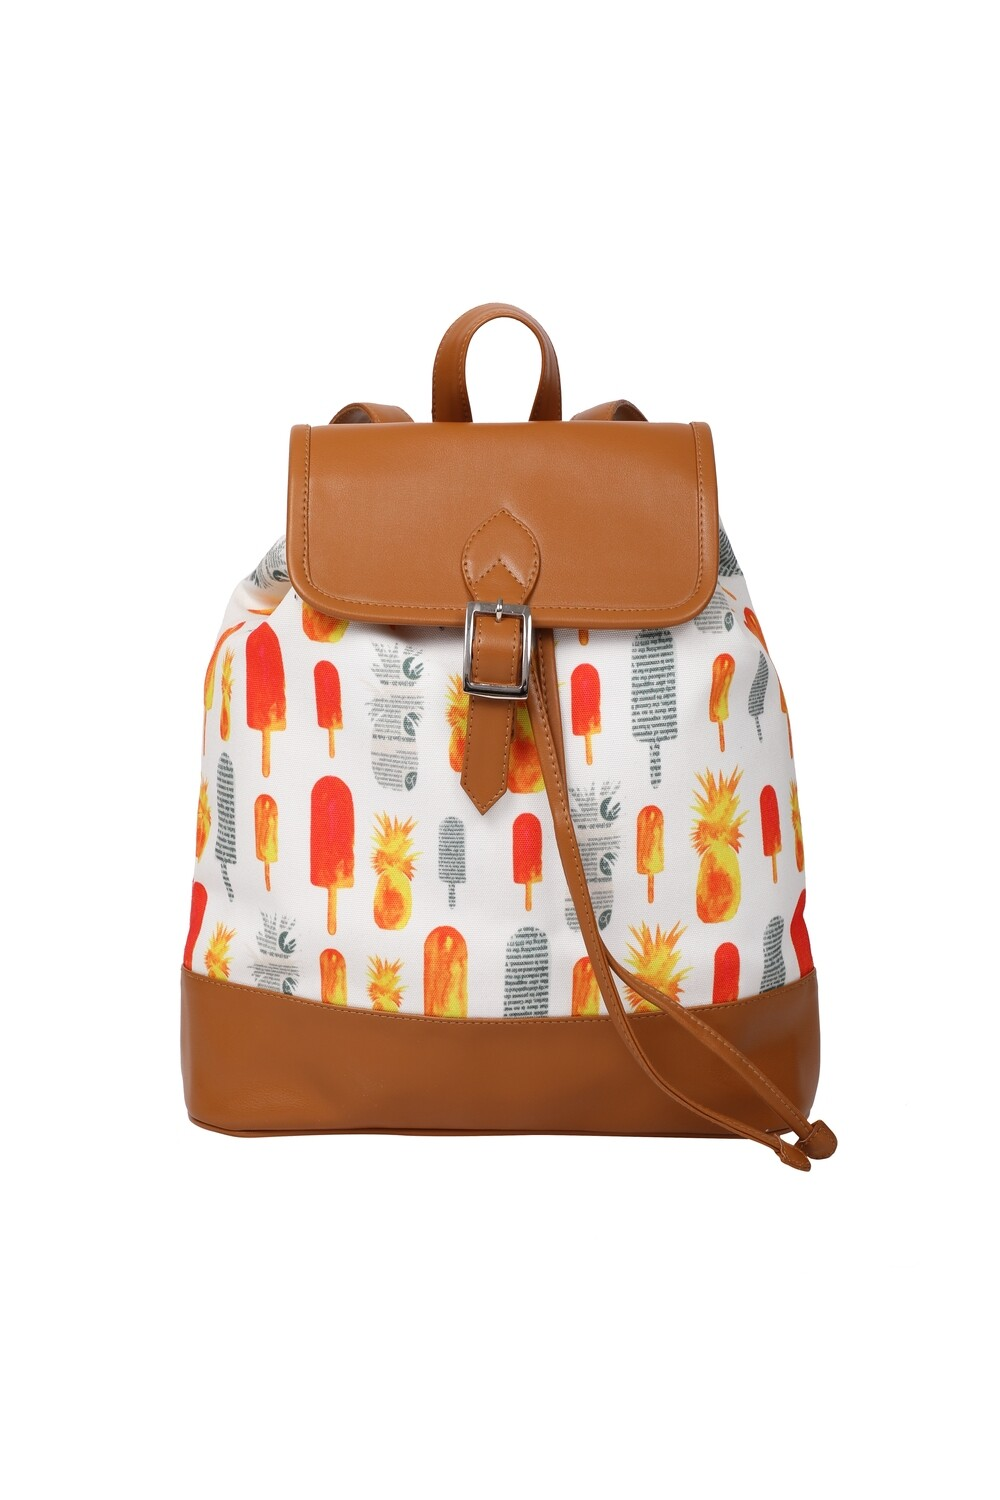 White backpack with Popsicle & Pineapple Print